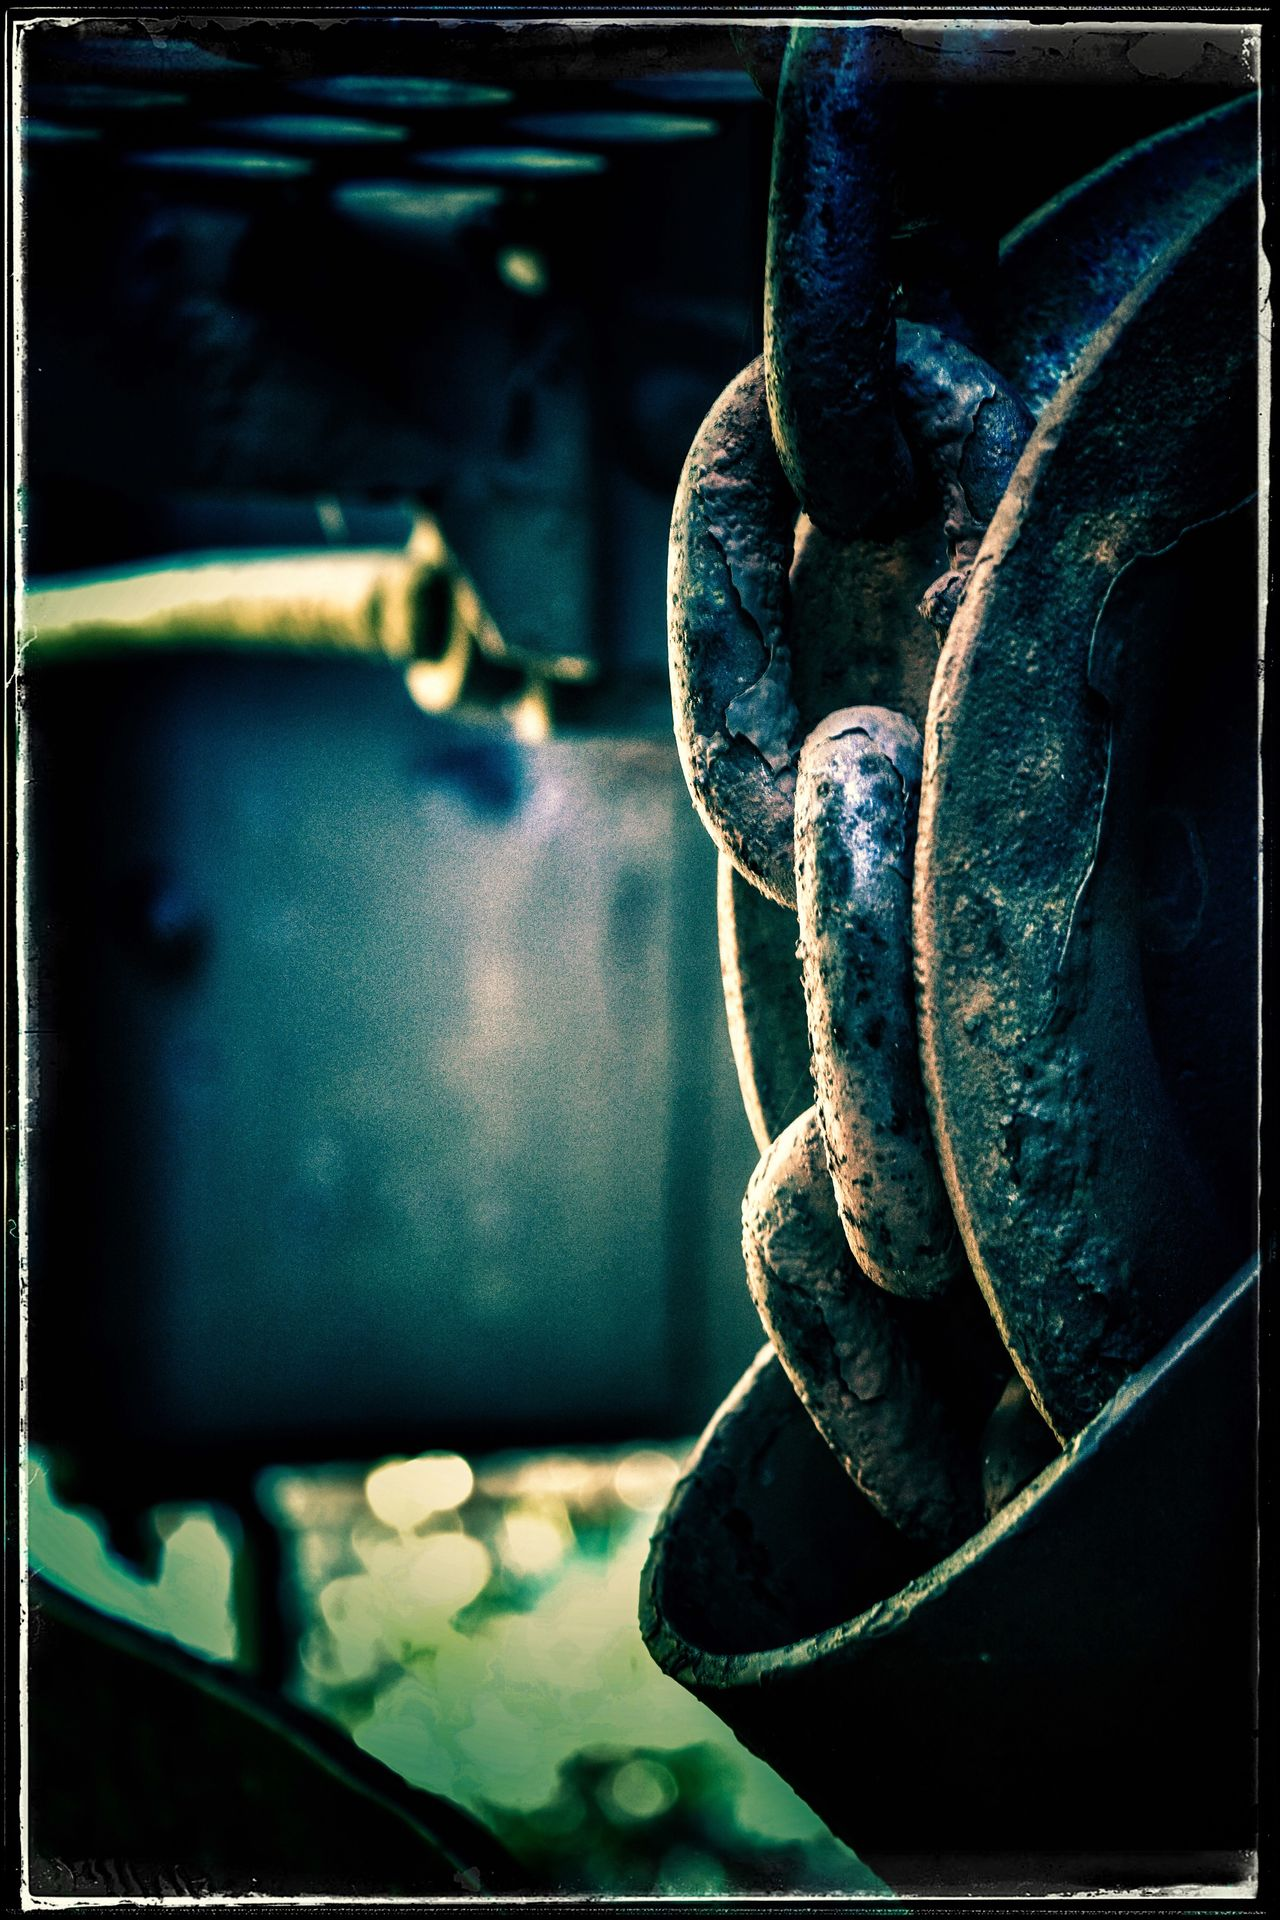 Close-up Metal Rusty No People Day Indoors  High Definition Creepy Dark Industrial Heavy Blue Tint